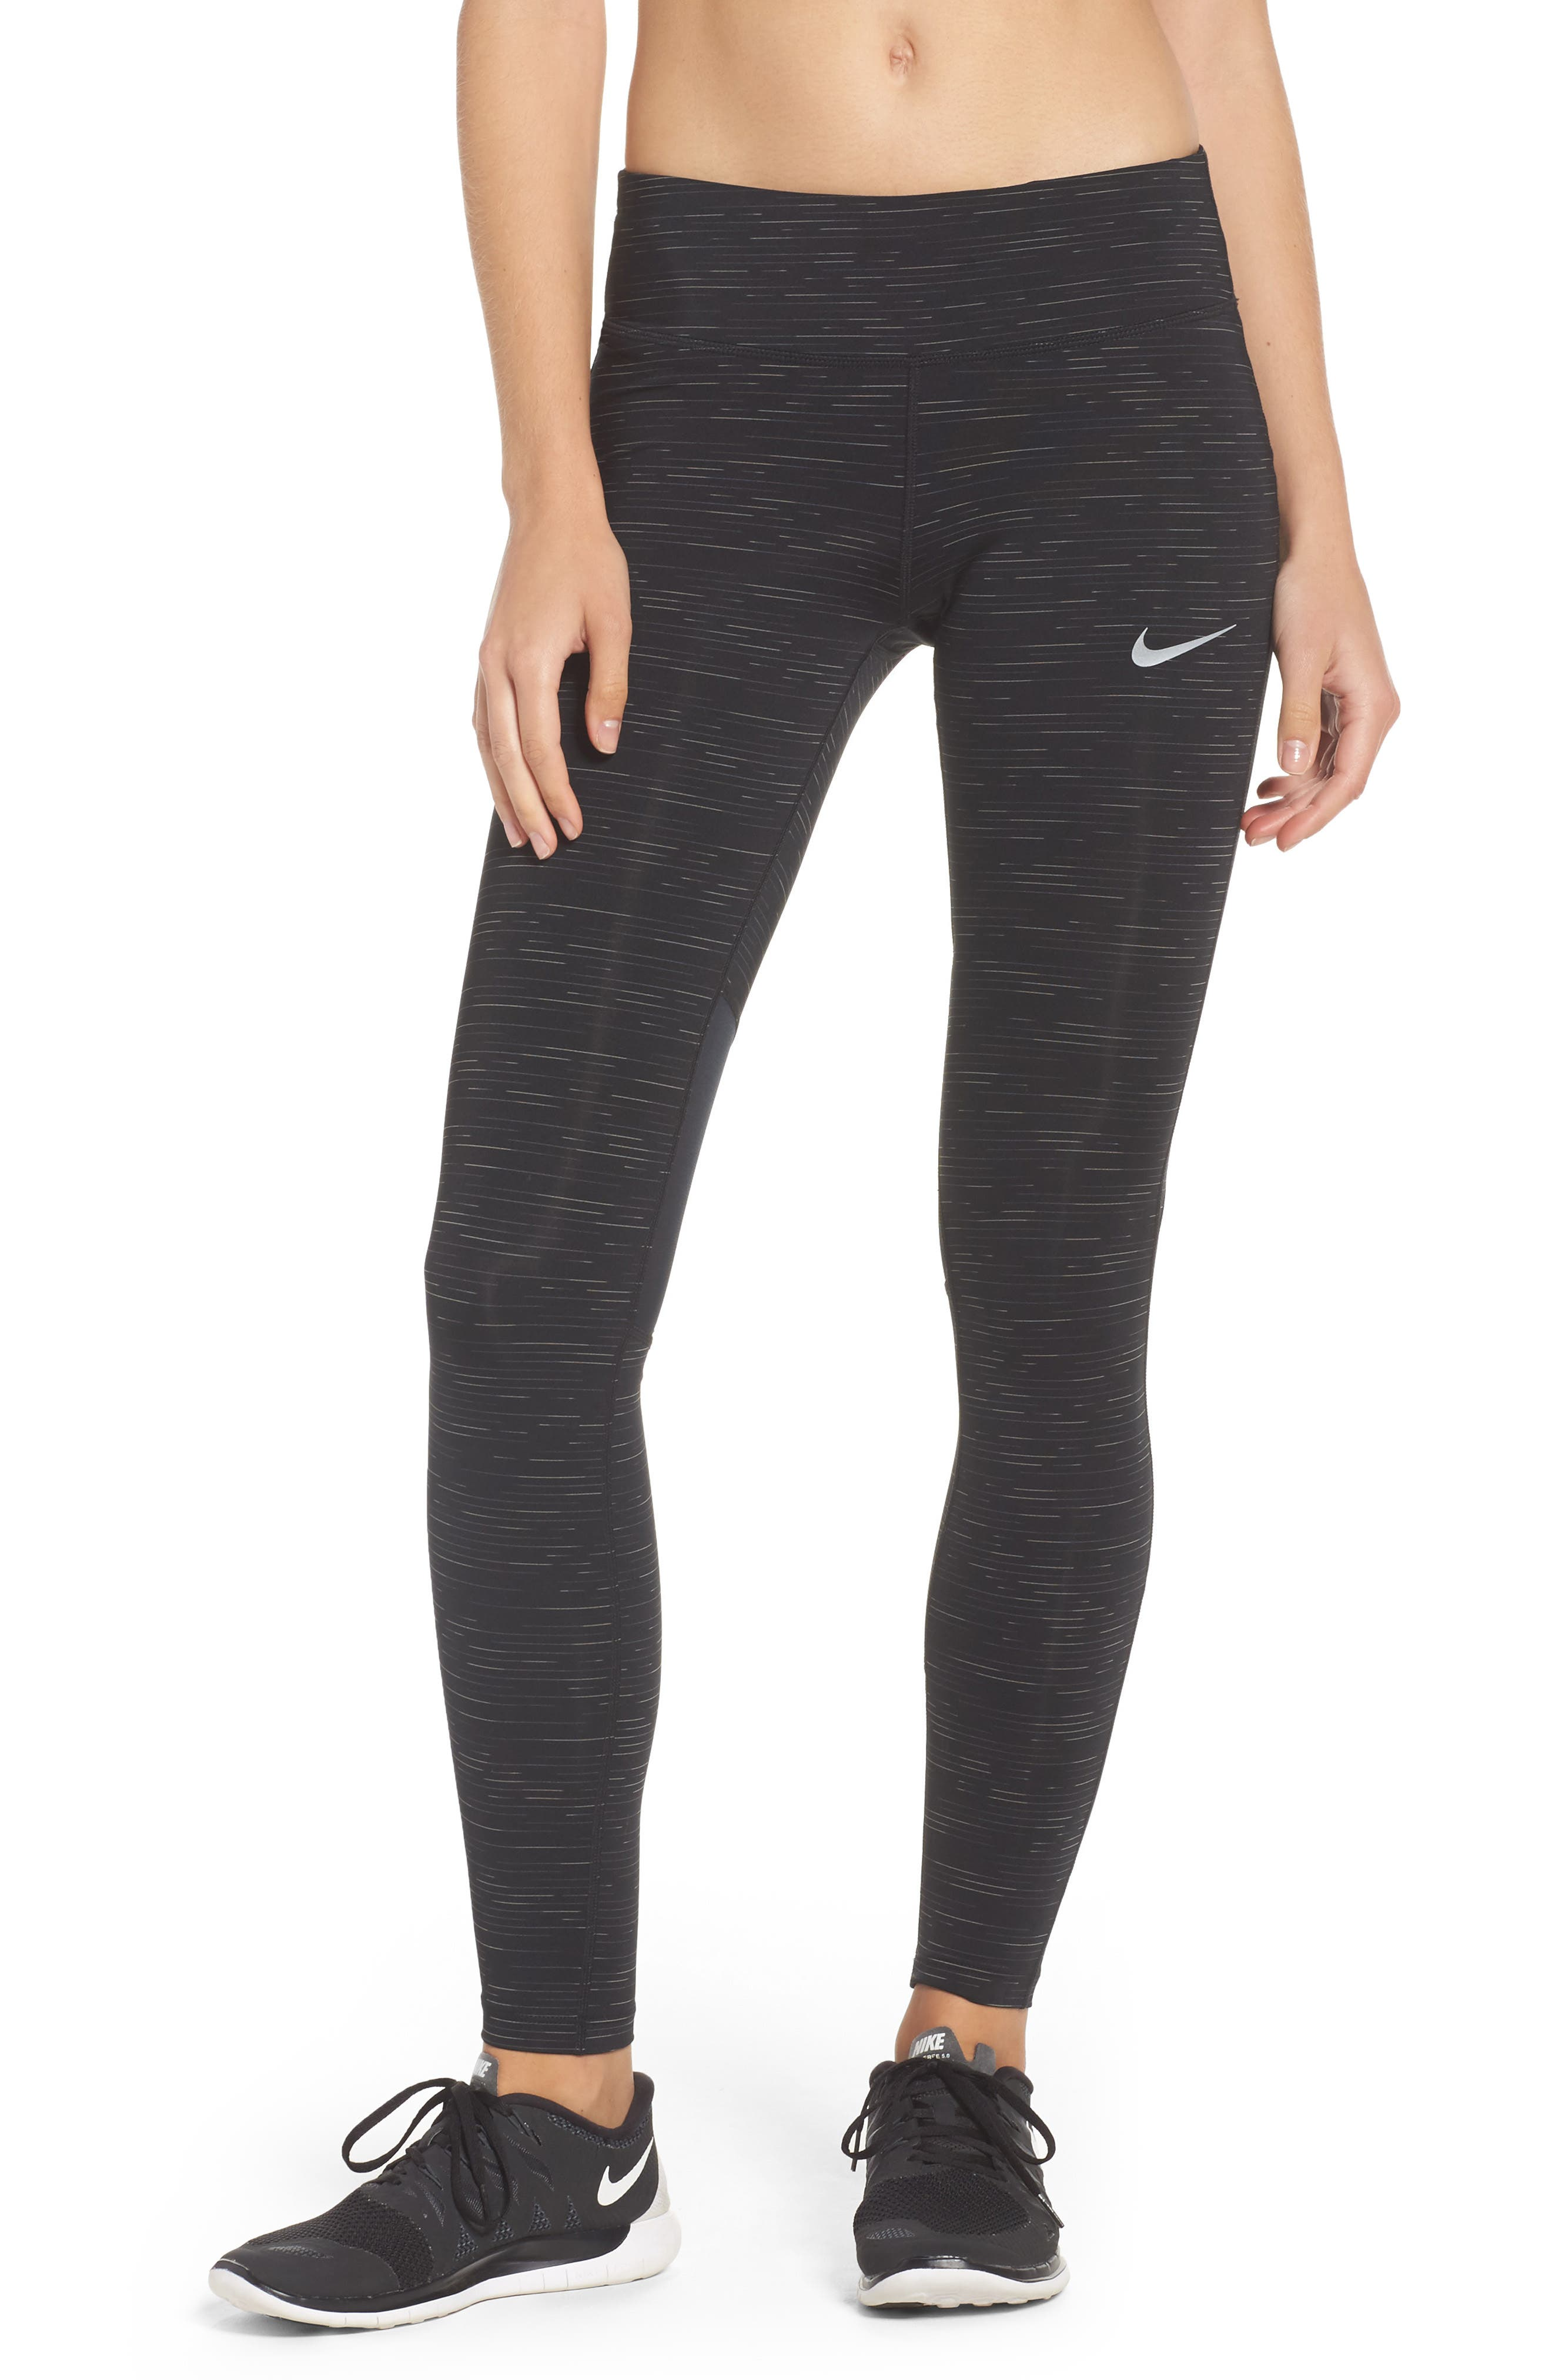 Nike Power Epic Lux Running Tights